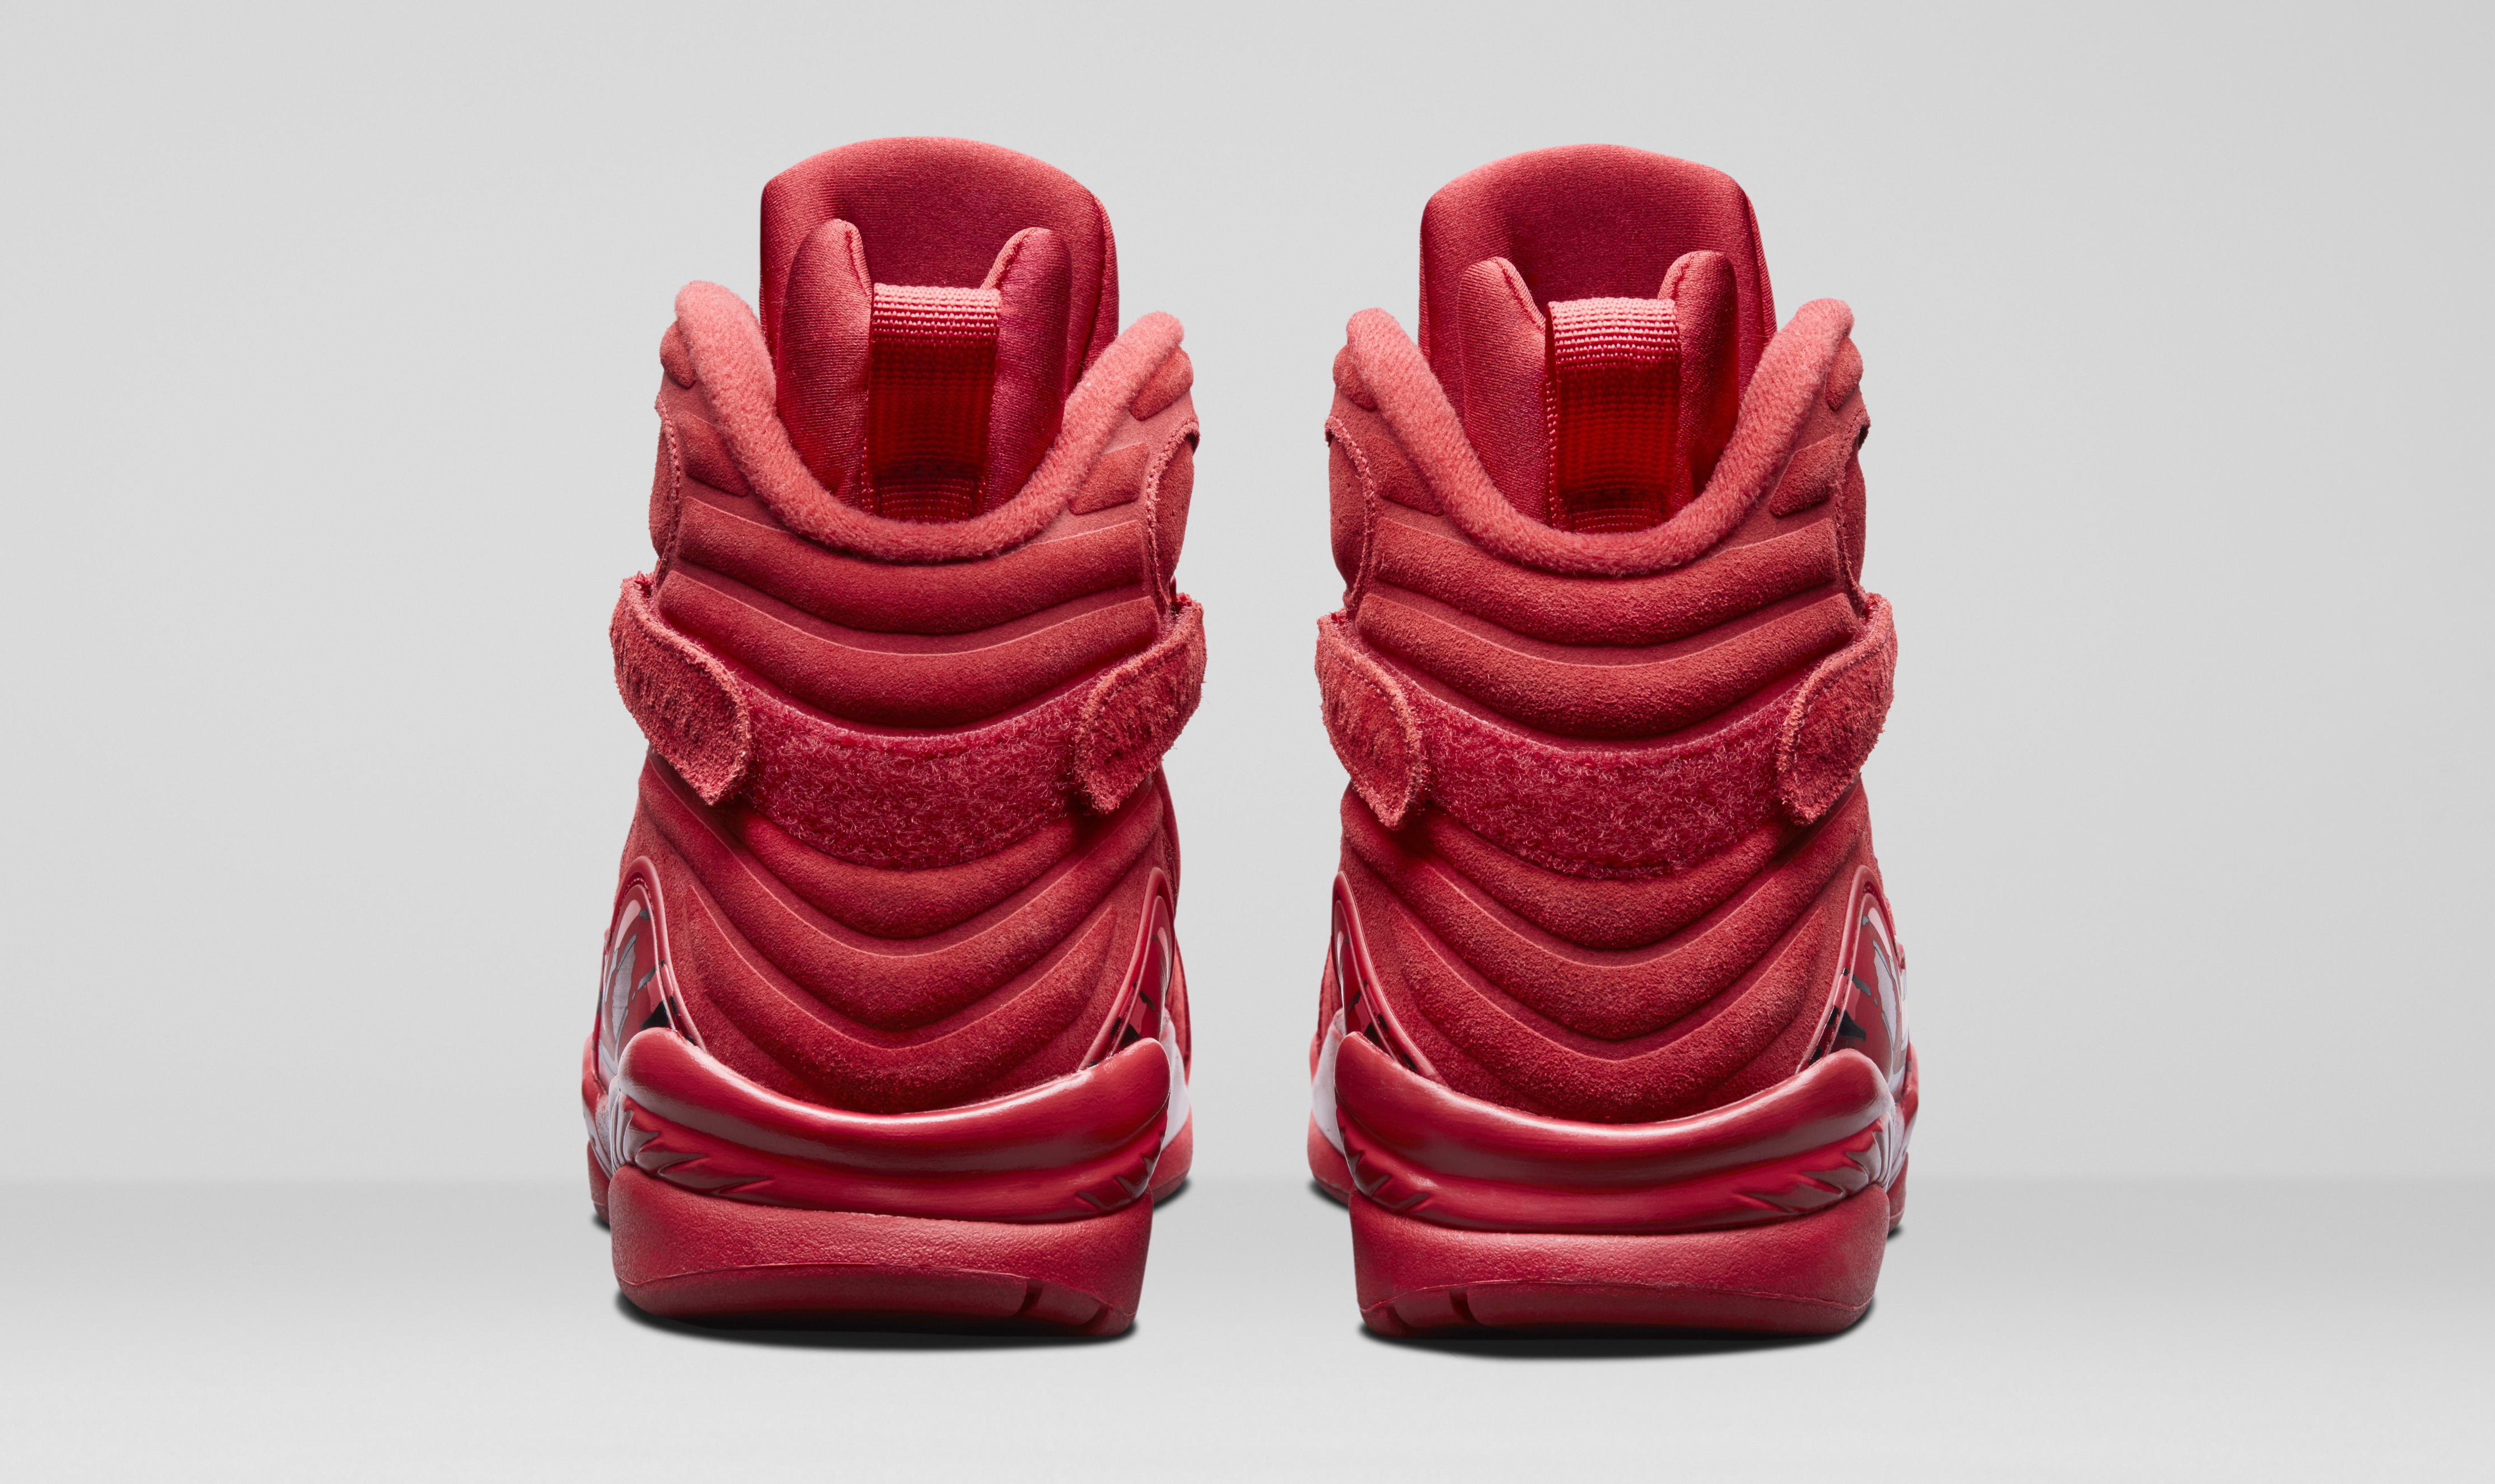 uk availability 91318 a5926 WMNS Air Jordan 8 'Valentine's Day' Gym Red/Ember Glow-Team ...